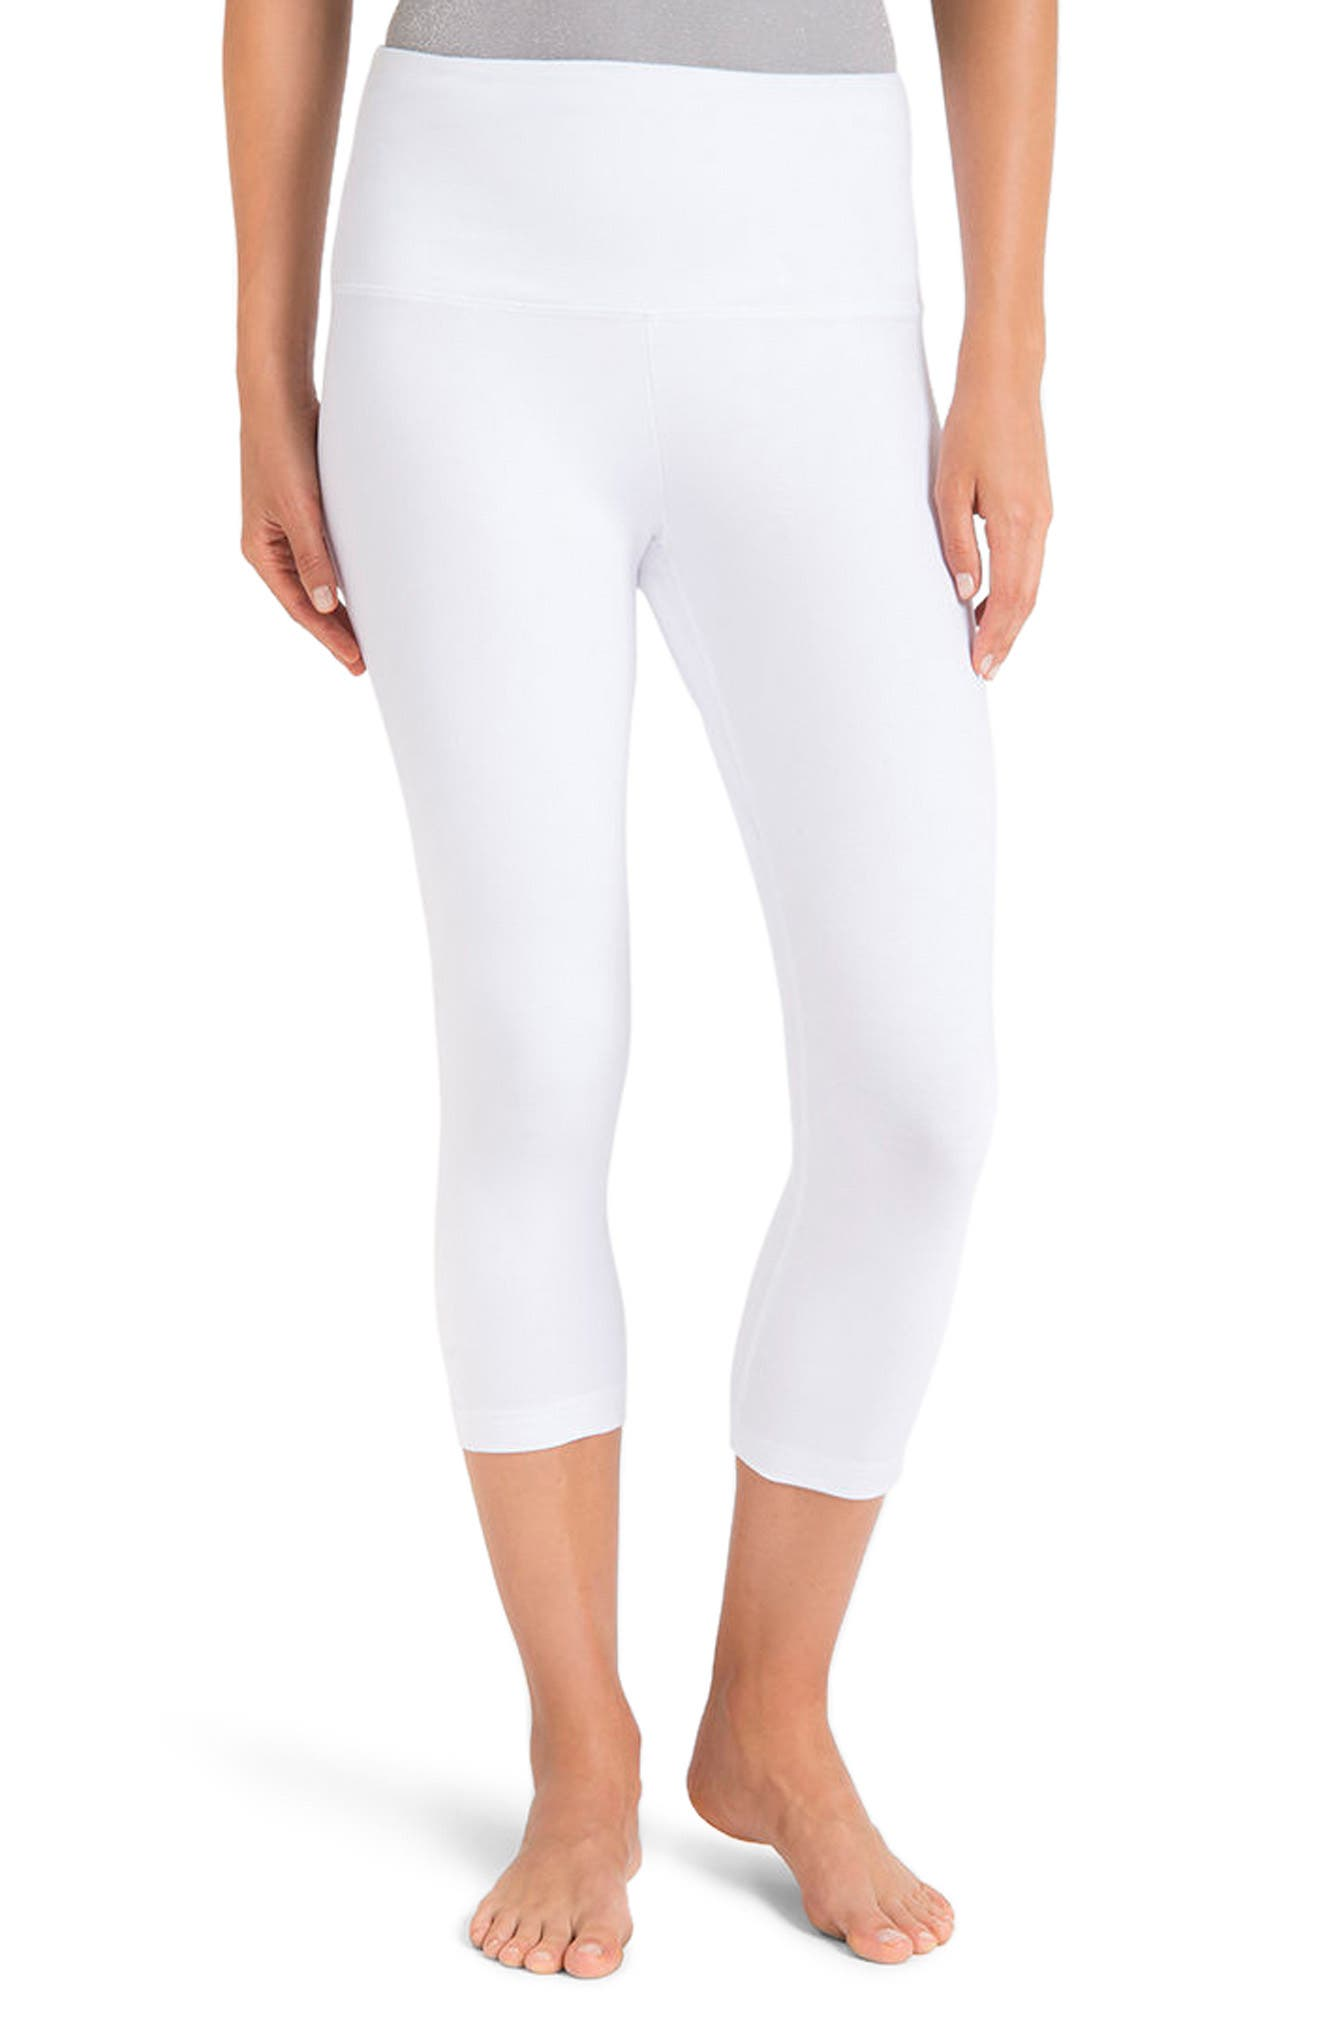 Lysse Control Top High Waist Capris, White